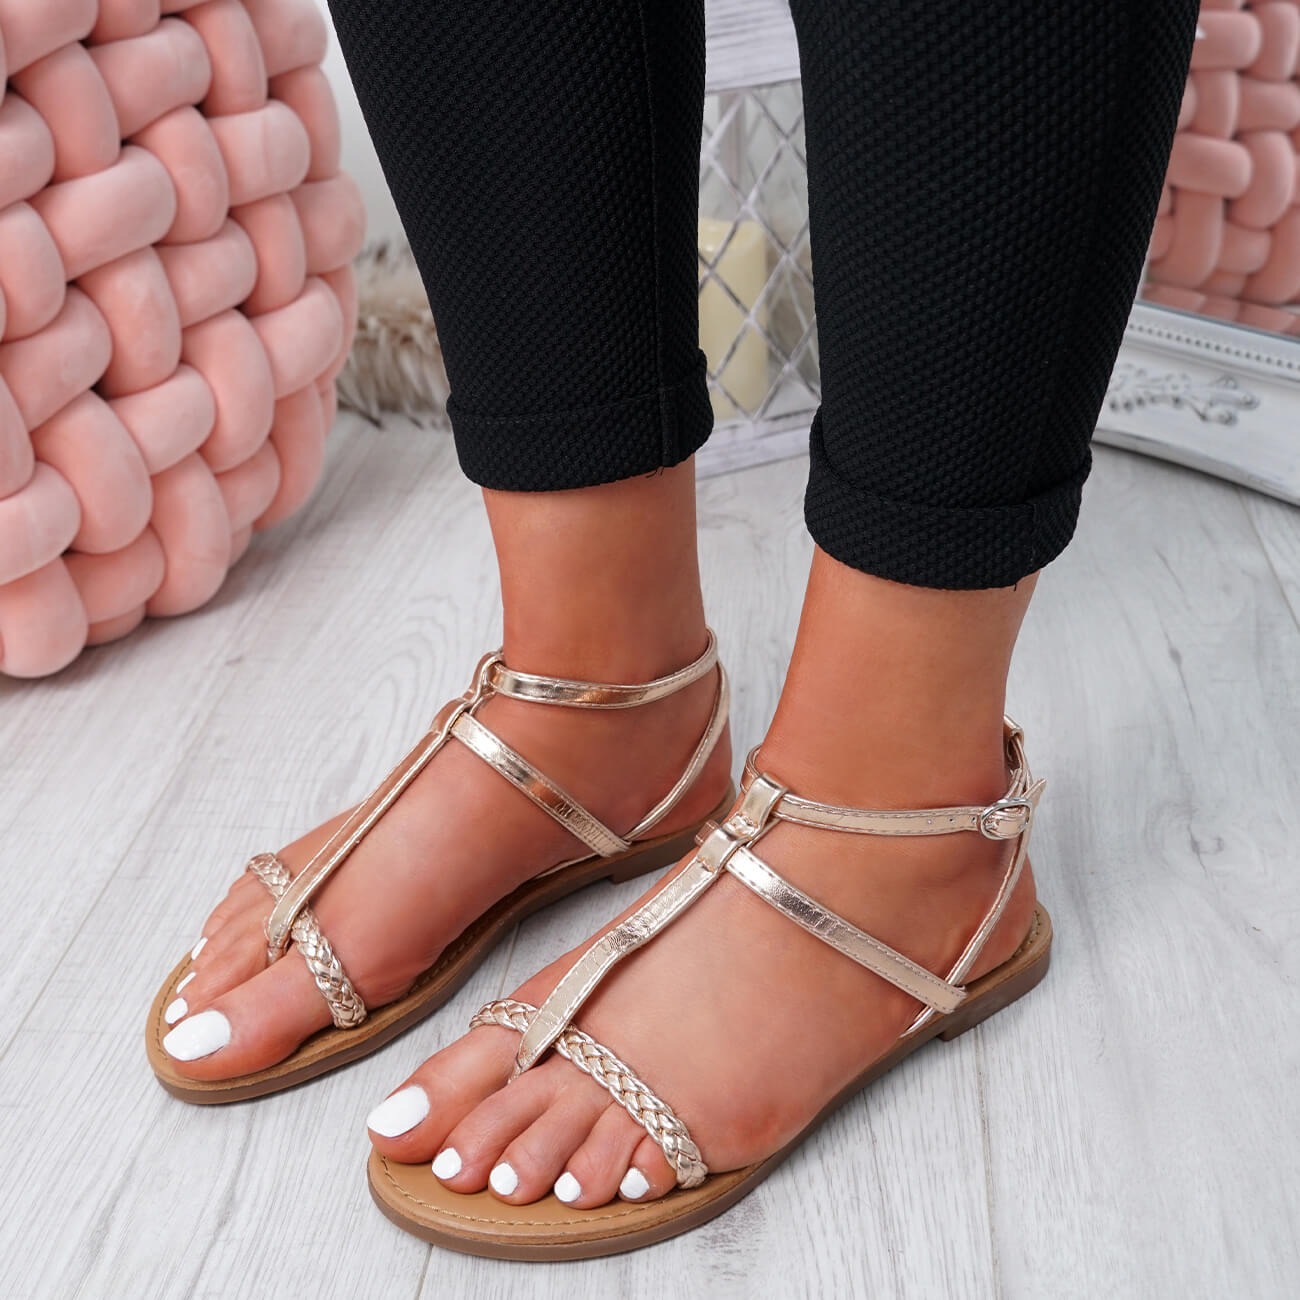 WOMENS-LADIES-T-STRAP-FLAT-SANDALS-BUCKLE-CASUAL-SUMMER-SHOES-SIZE-UK thumbnail 17